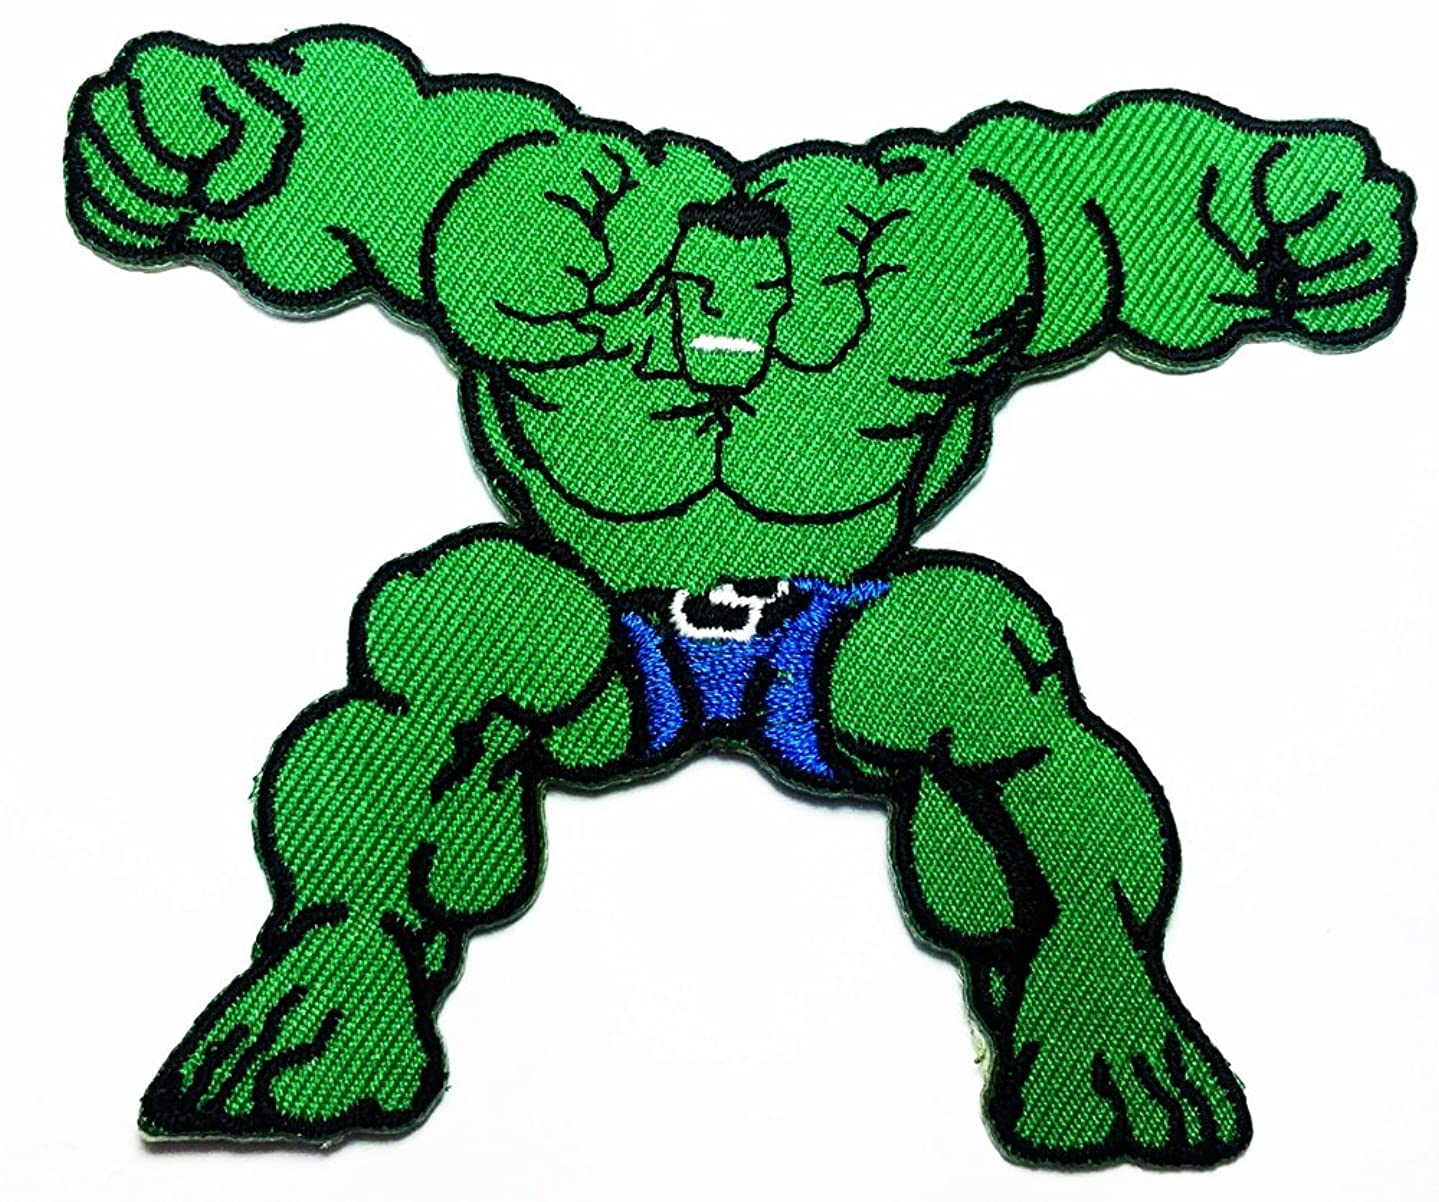 Marvel Comics Avengers The Incredible Hulk Brute Force Fist logo patch Jacket T-shirt Sew Iron on Patch Badge Embroidery